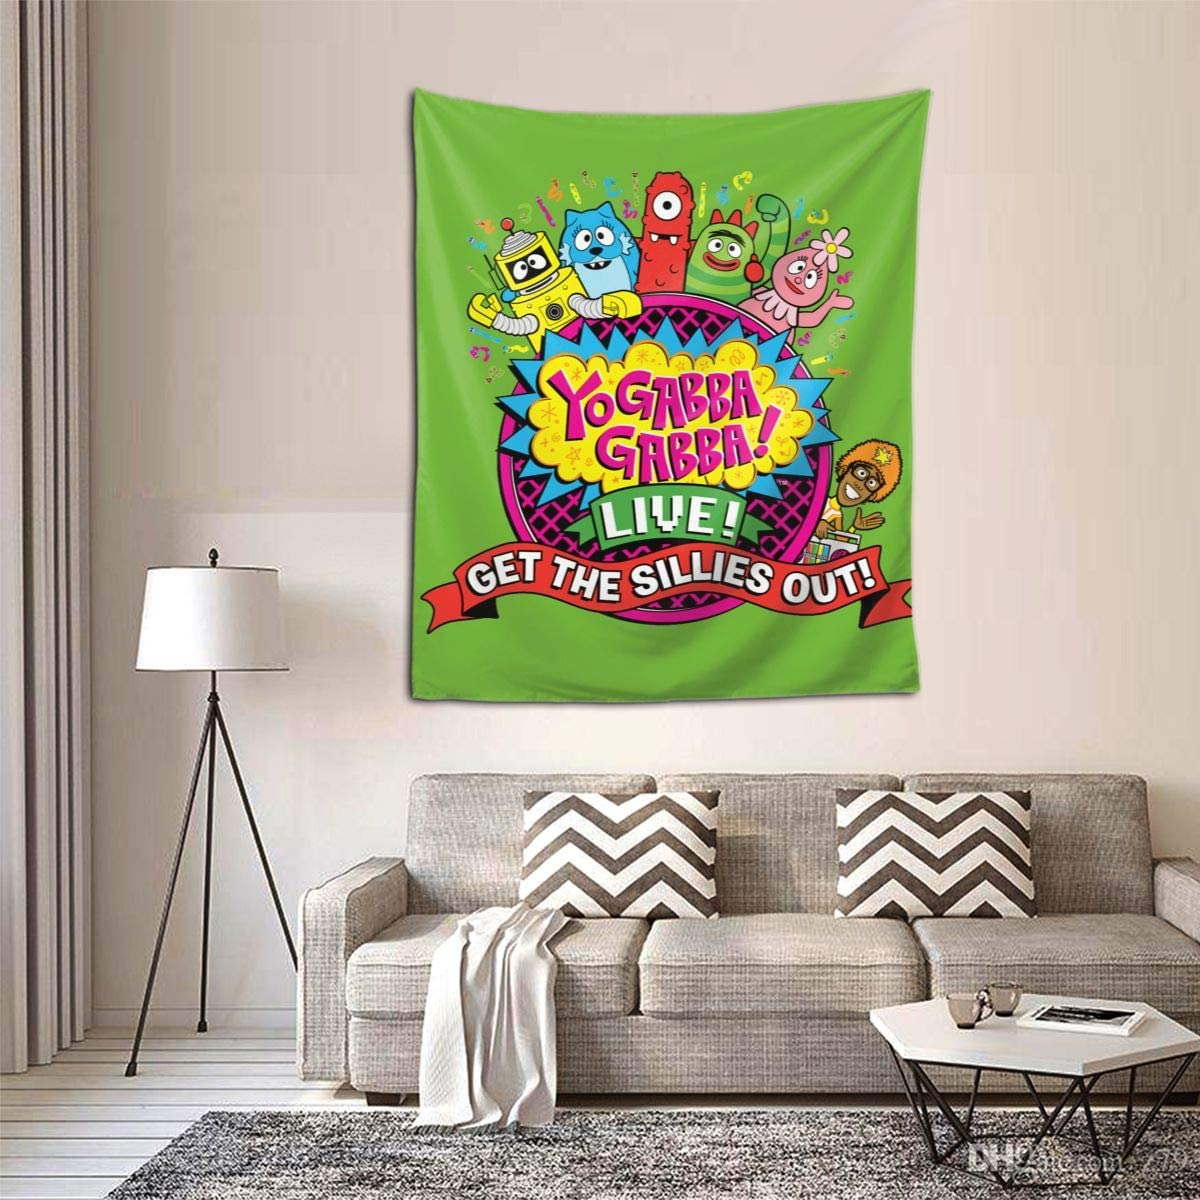 "Qwtykeertyi Yo Gabba Gabba Decorative Wall Blanket Tapestries for Bedroom Living Room Dorm Decor 60"" X 51""Inches Indoor Tapestries Vertical Version Tapestry"